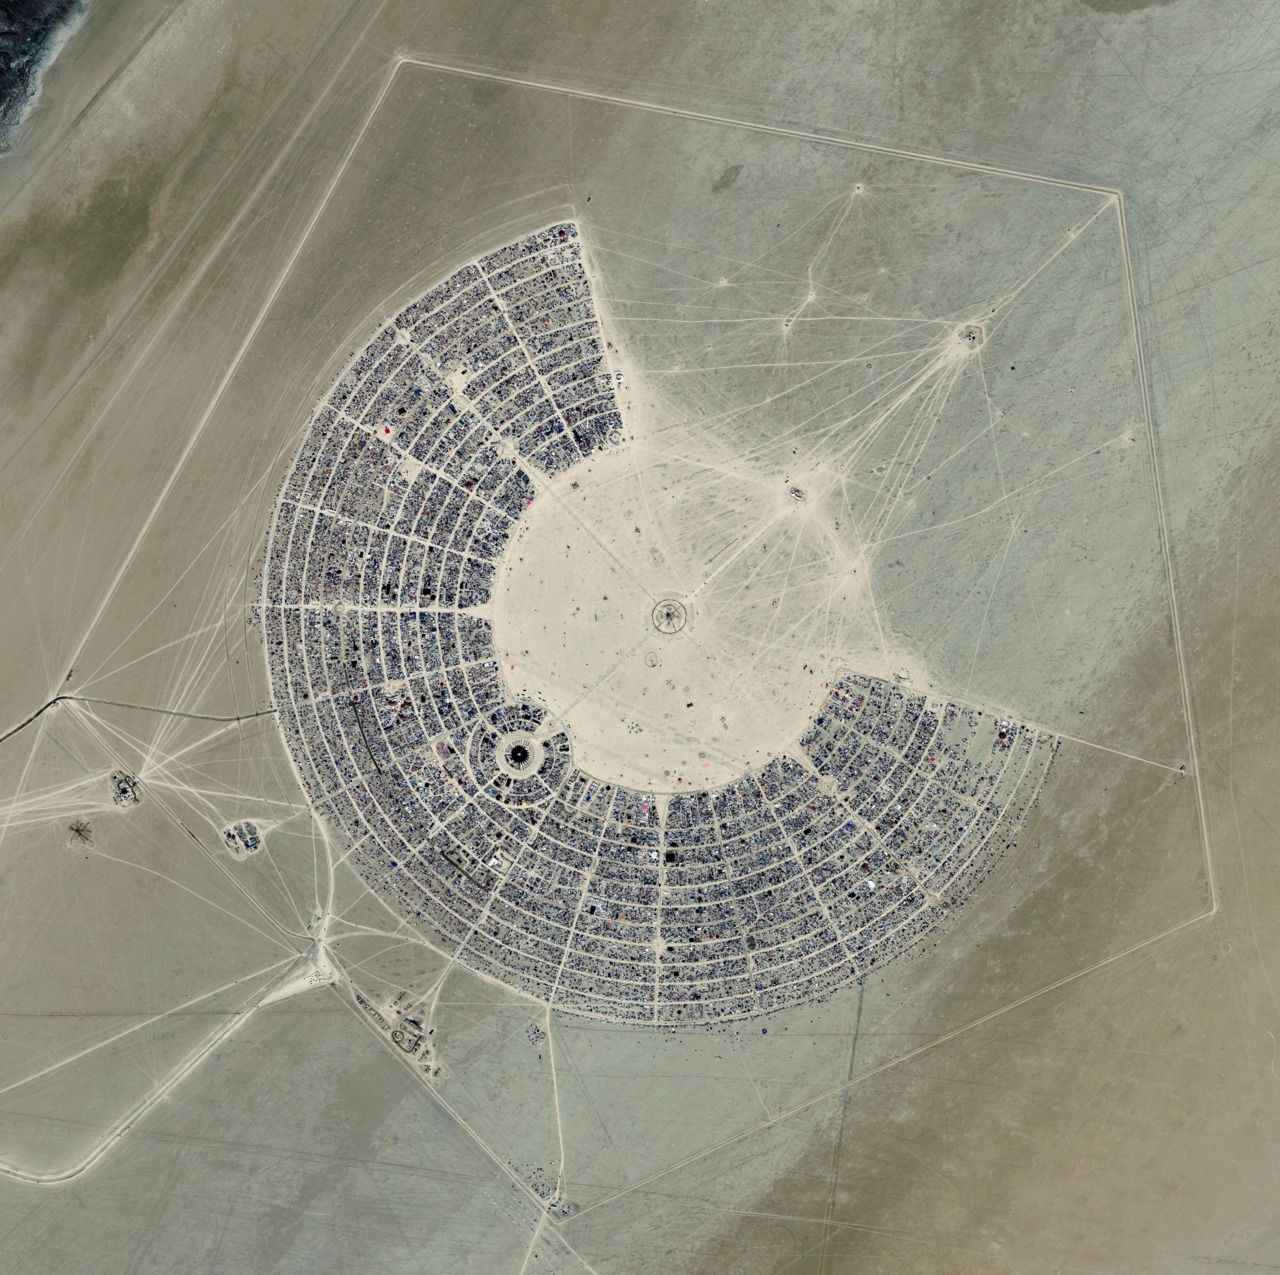 Google s Skybox Satellites Shoot GIFs Of Burning Man Being Built Burning man satellite photo 2012